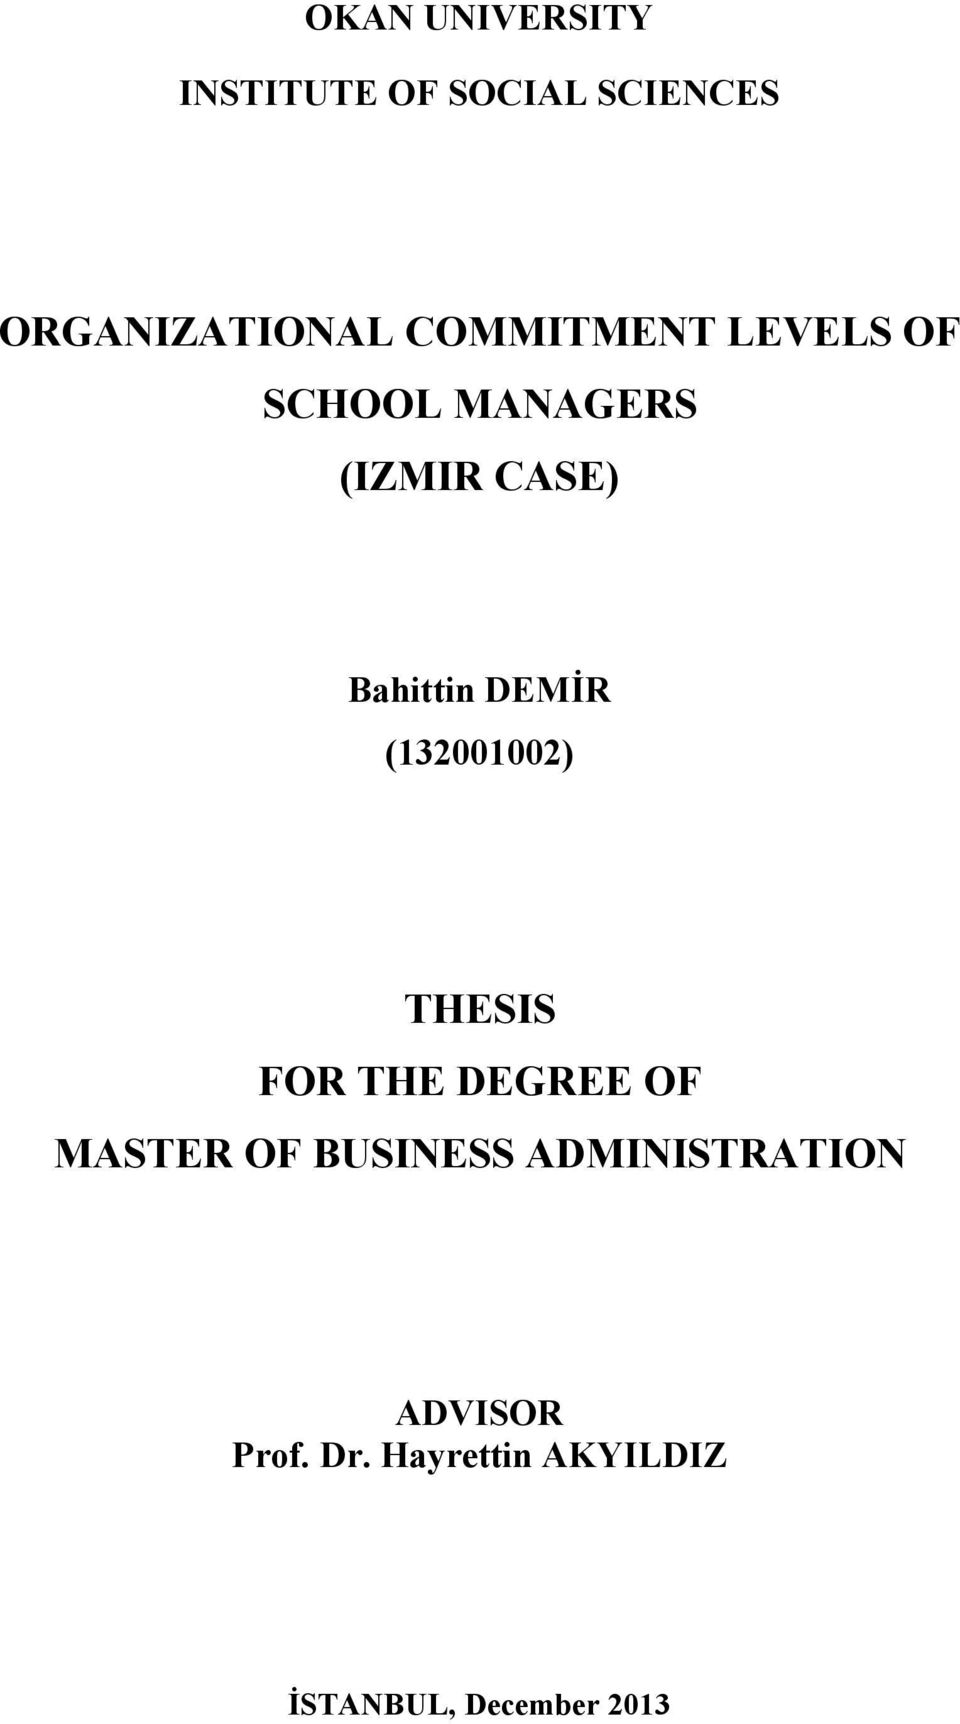 DEMİR (132001002) THESIS FOR THE DEGREE OF MASTER OF BUSINESS